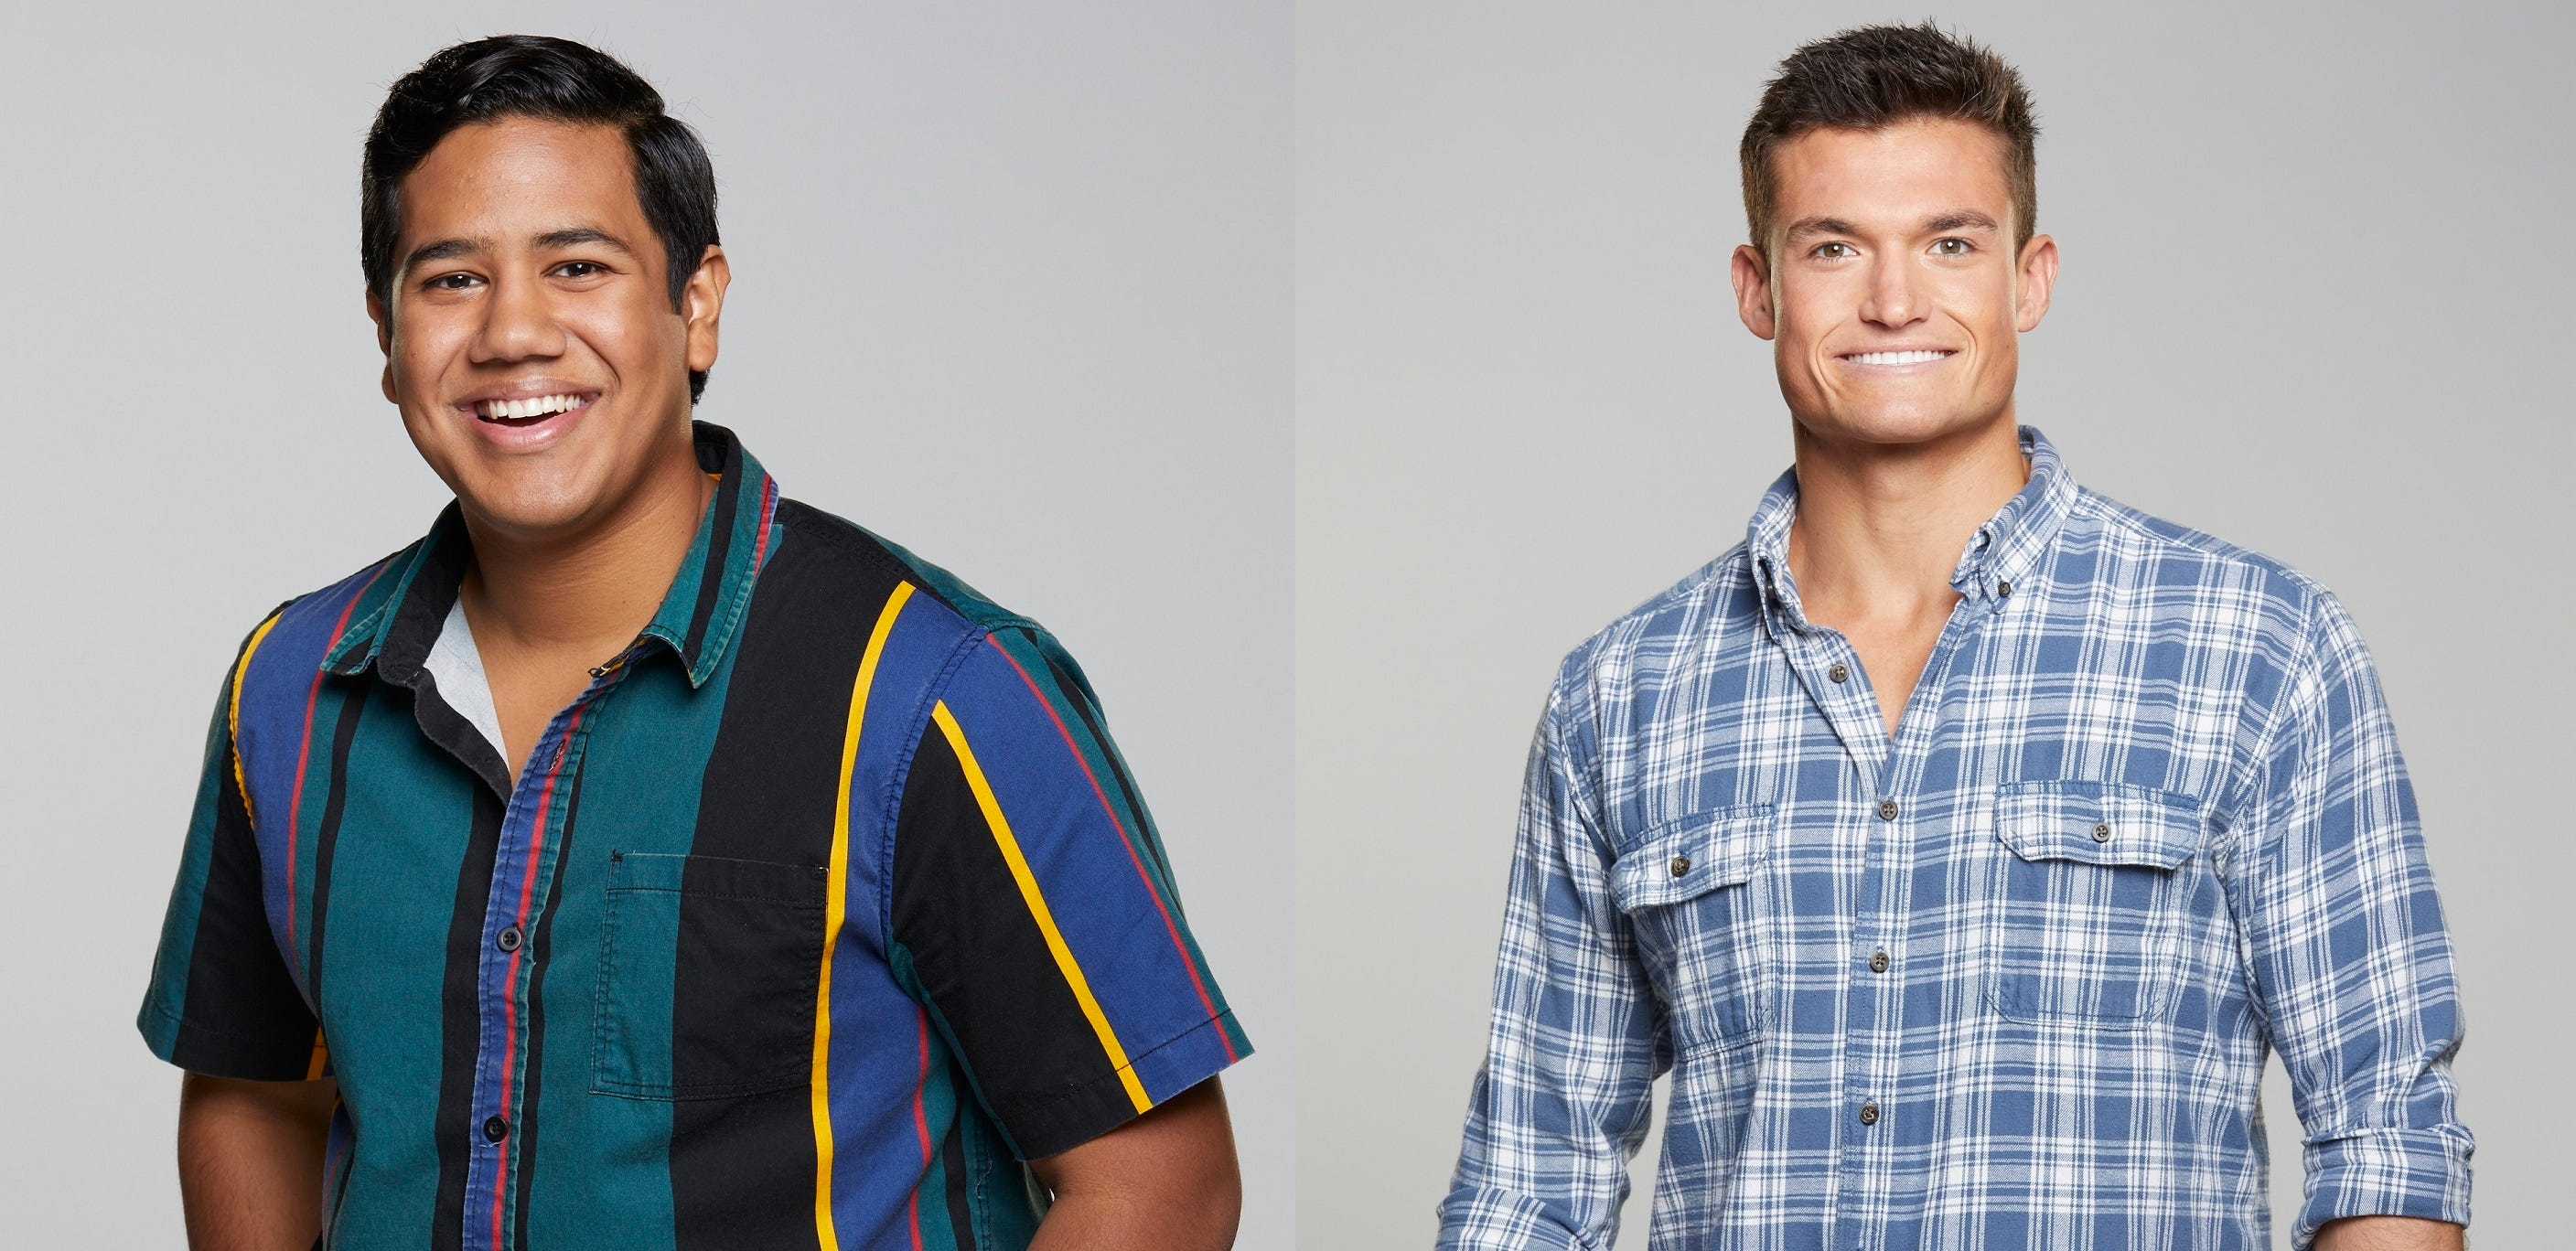 Meet the 2 former UT students competing on 'Big Brother 21'